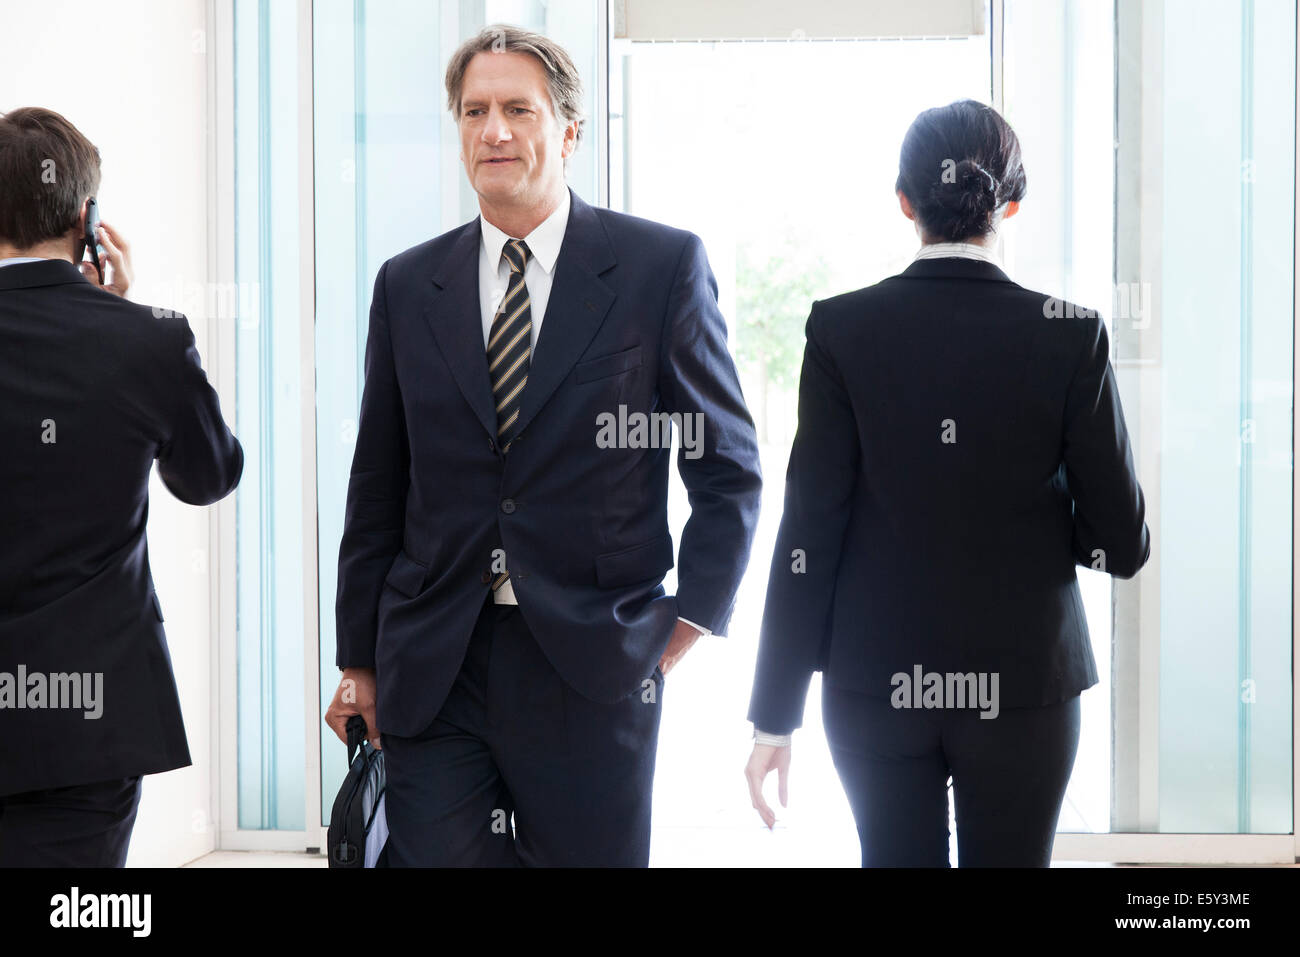 Businessman entering office building lobby - Stock Image